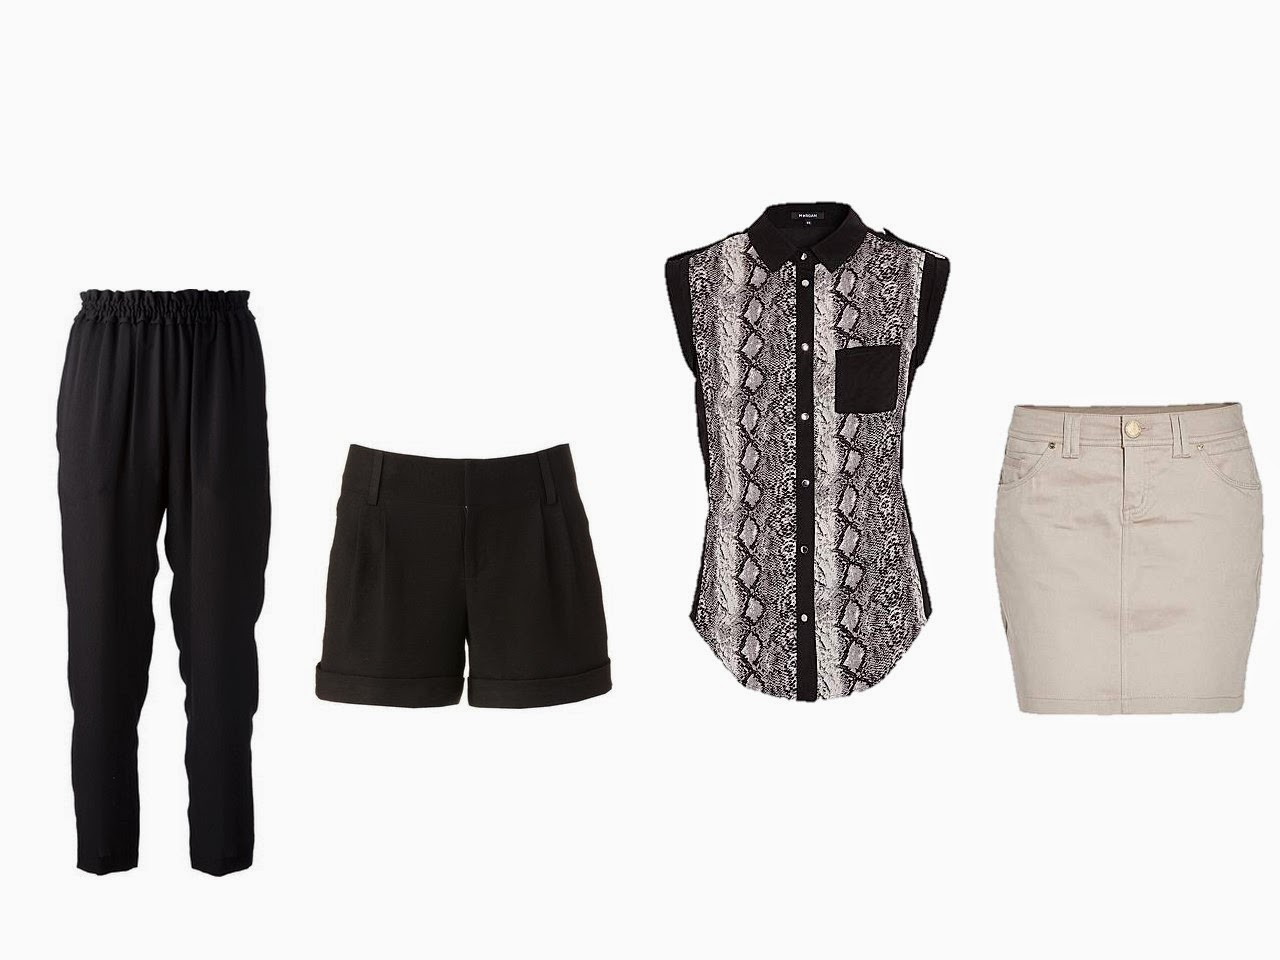 four fundamental garments: black pants, black shorts, black and beige top, beige skirt